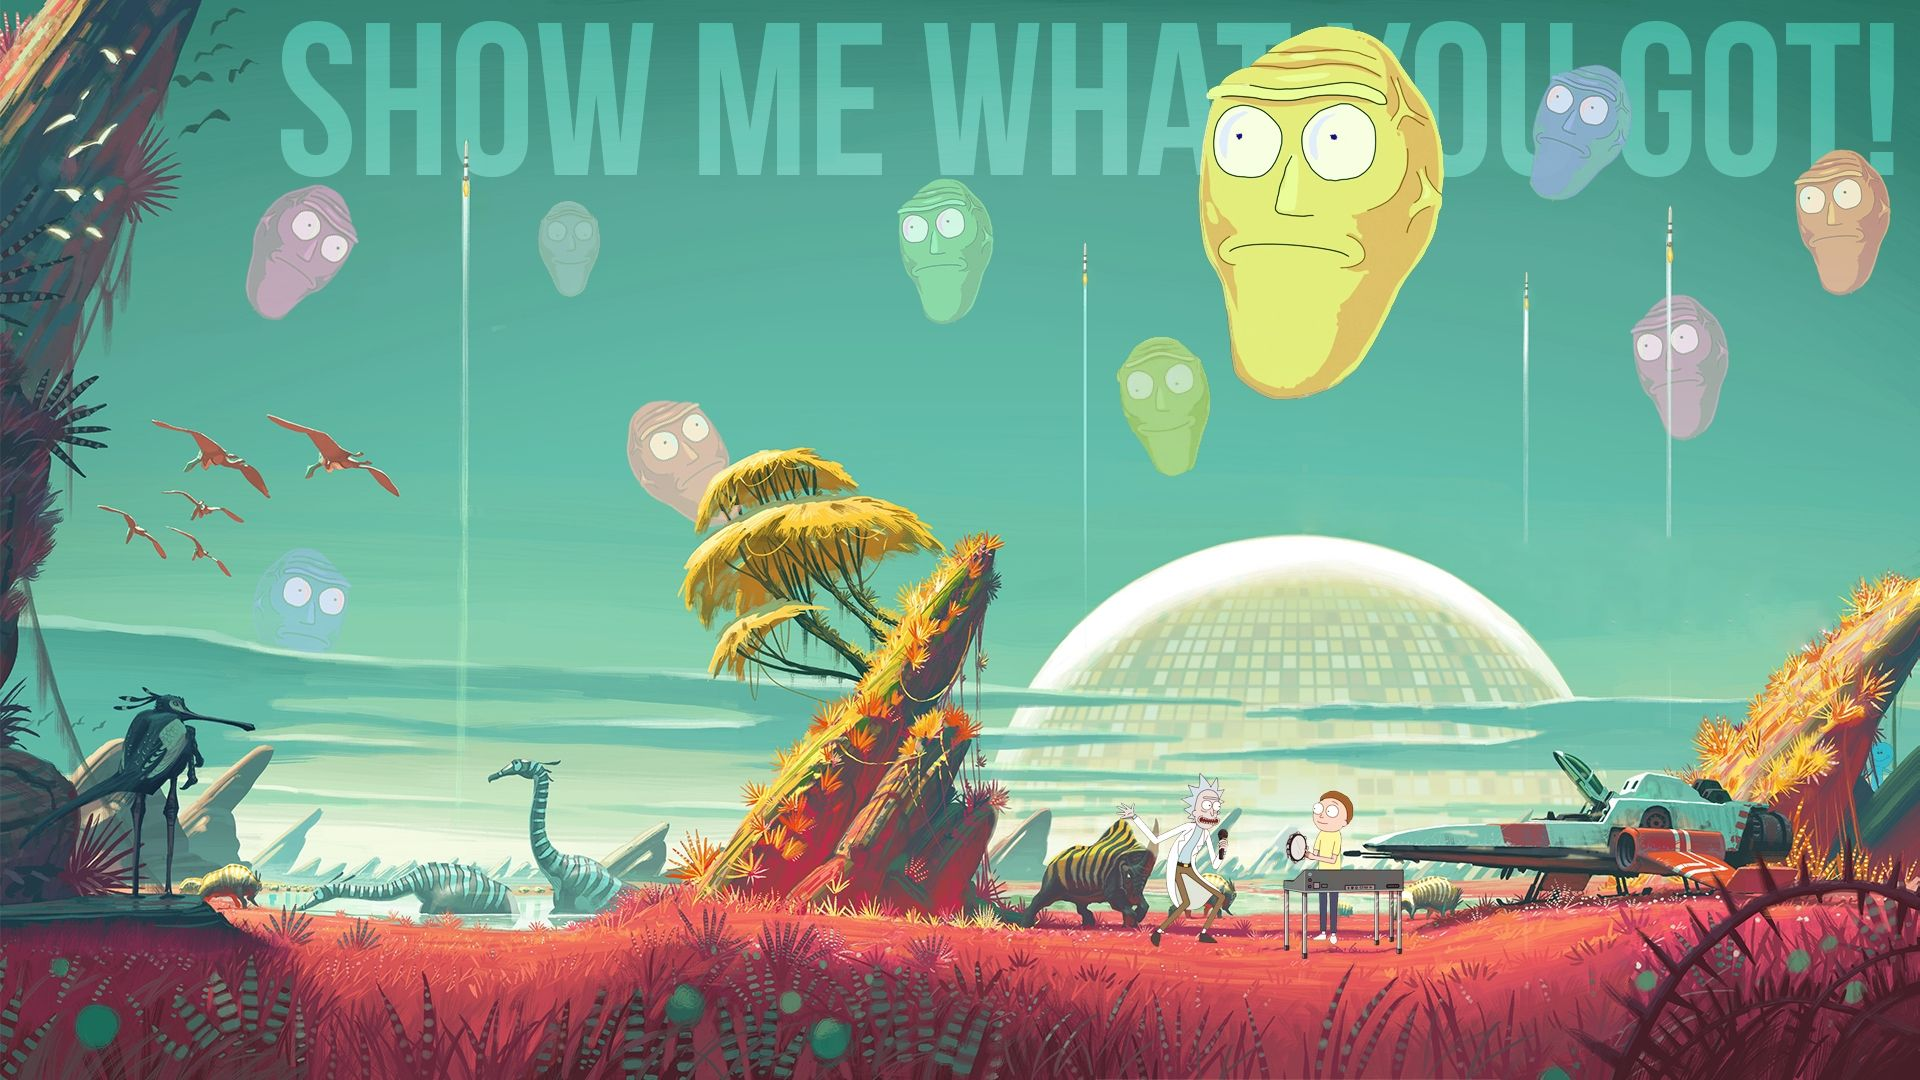 10 Most Popular 1080p Rick And Morty Wallpaper Full Hd 1920 1080 For Pc Background Rick And Morty Cartoon Wallpaper Rick And Morty Poster